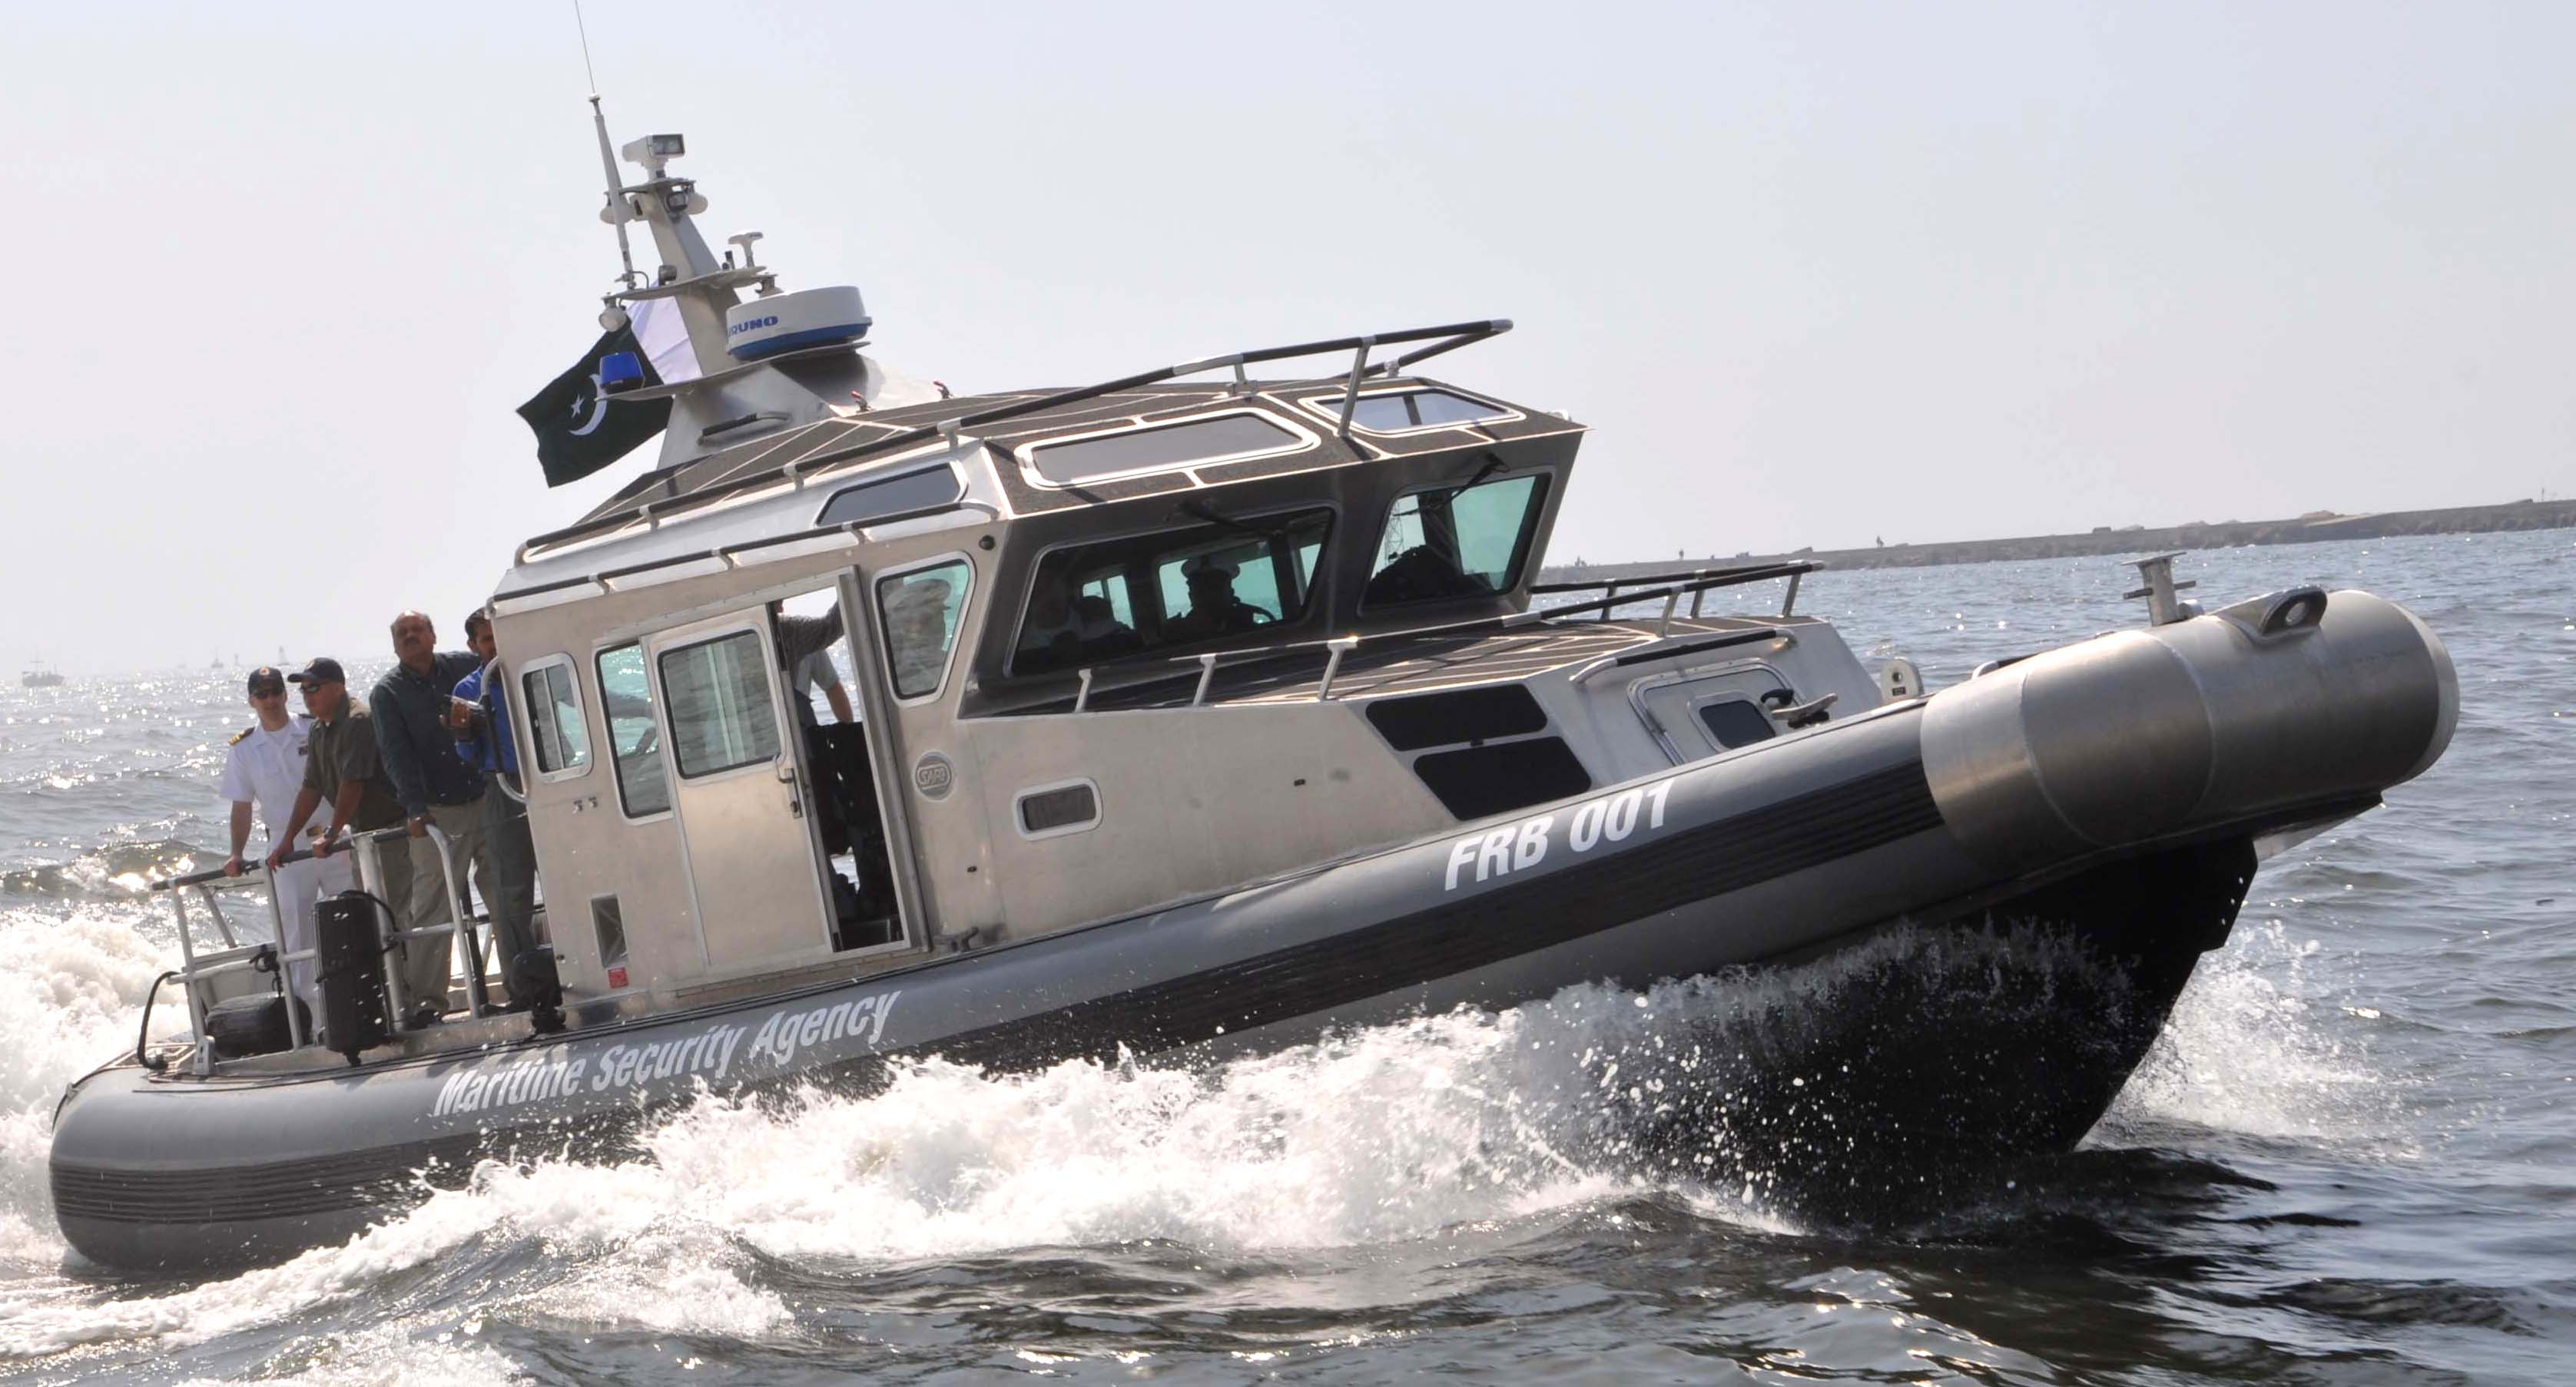 Maritime Security Agency Arrests Four Iranians 92 News